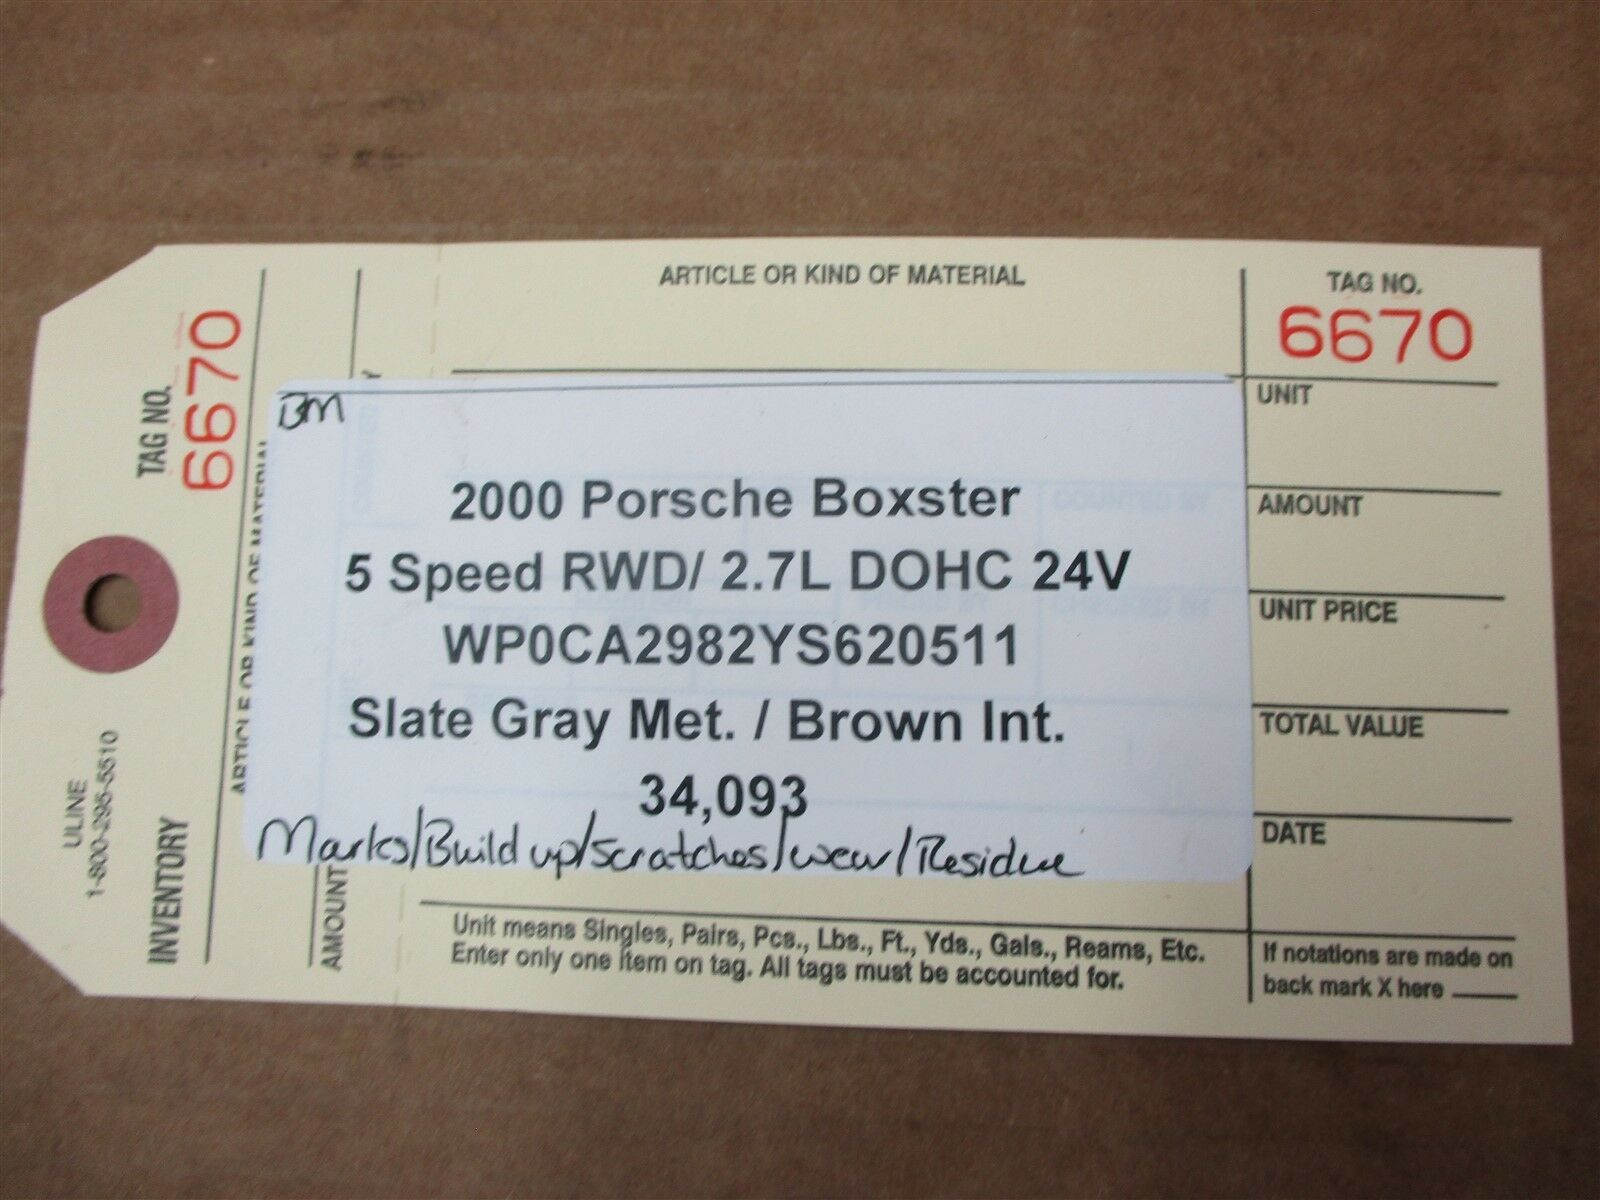 00 Boxster RWD Porsche 986 INTERIOR TOP ROOF RELEASE LATCH TRIM 34,093